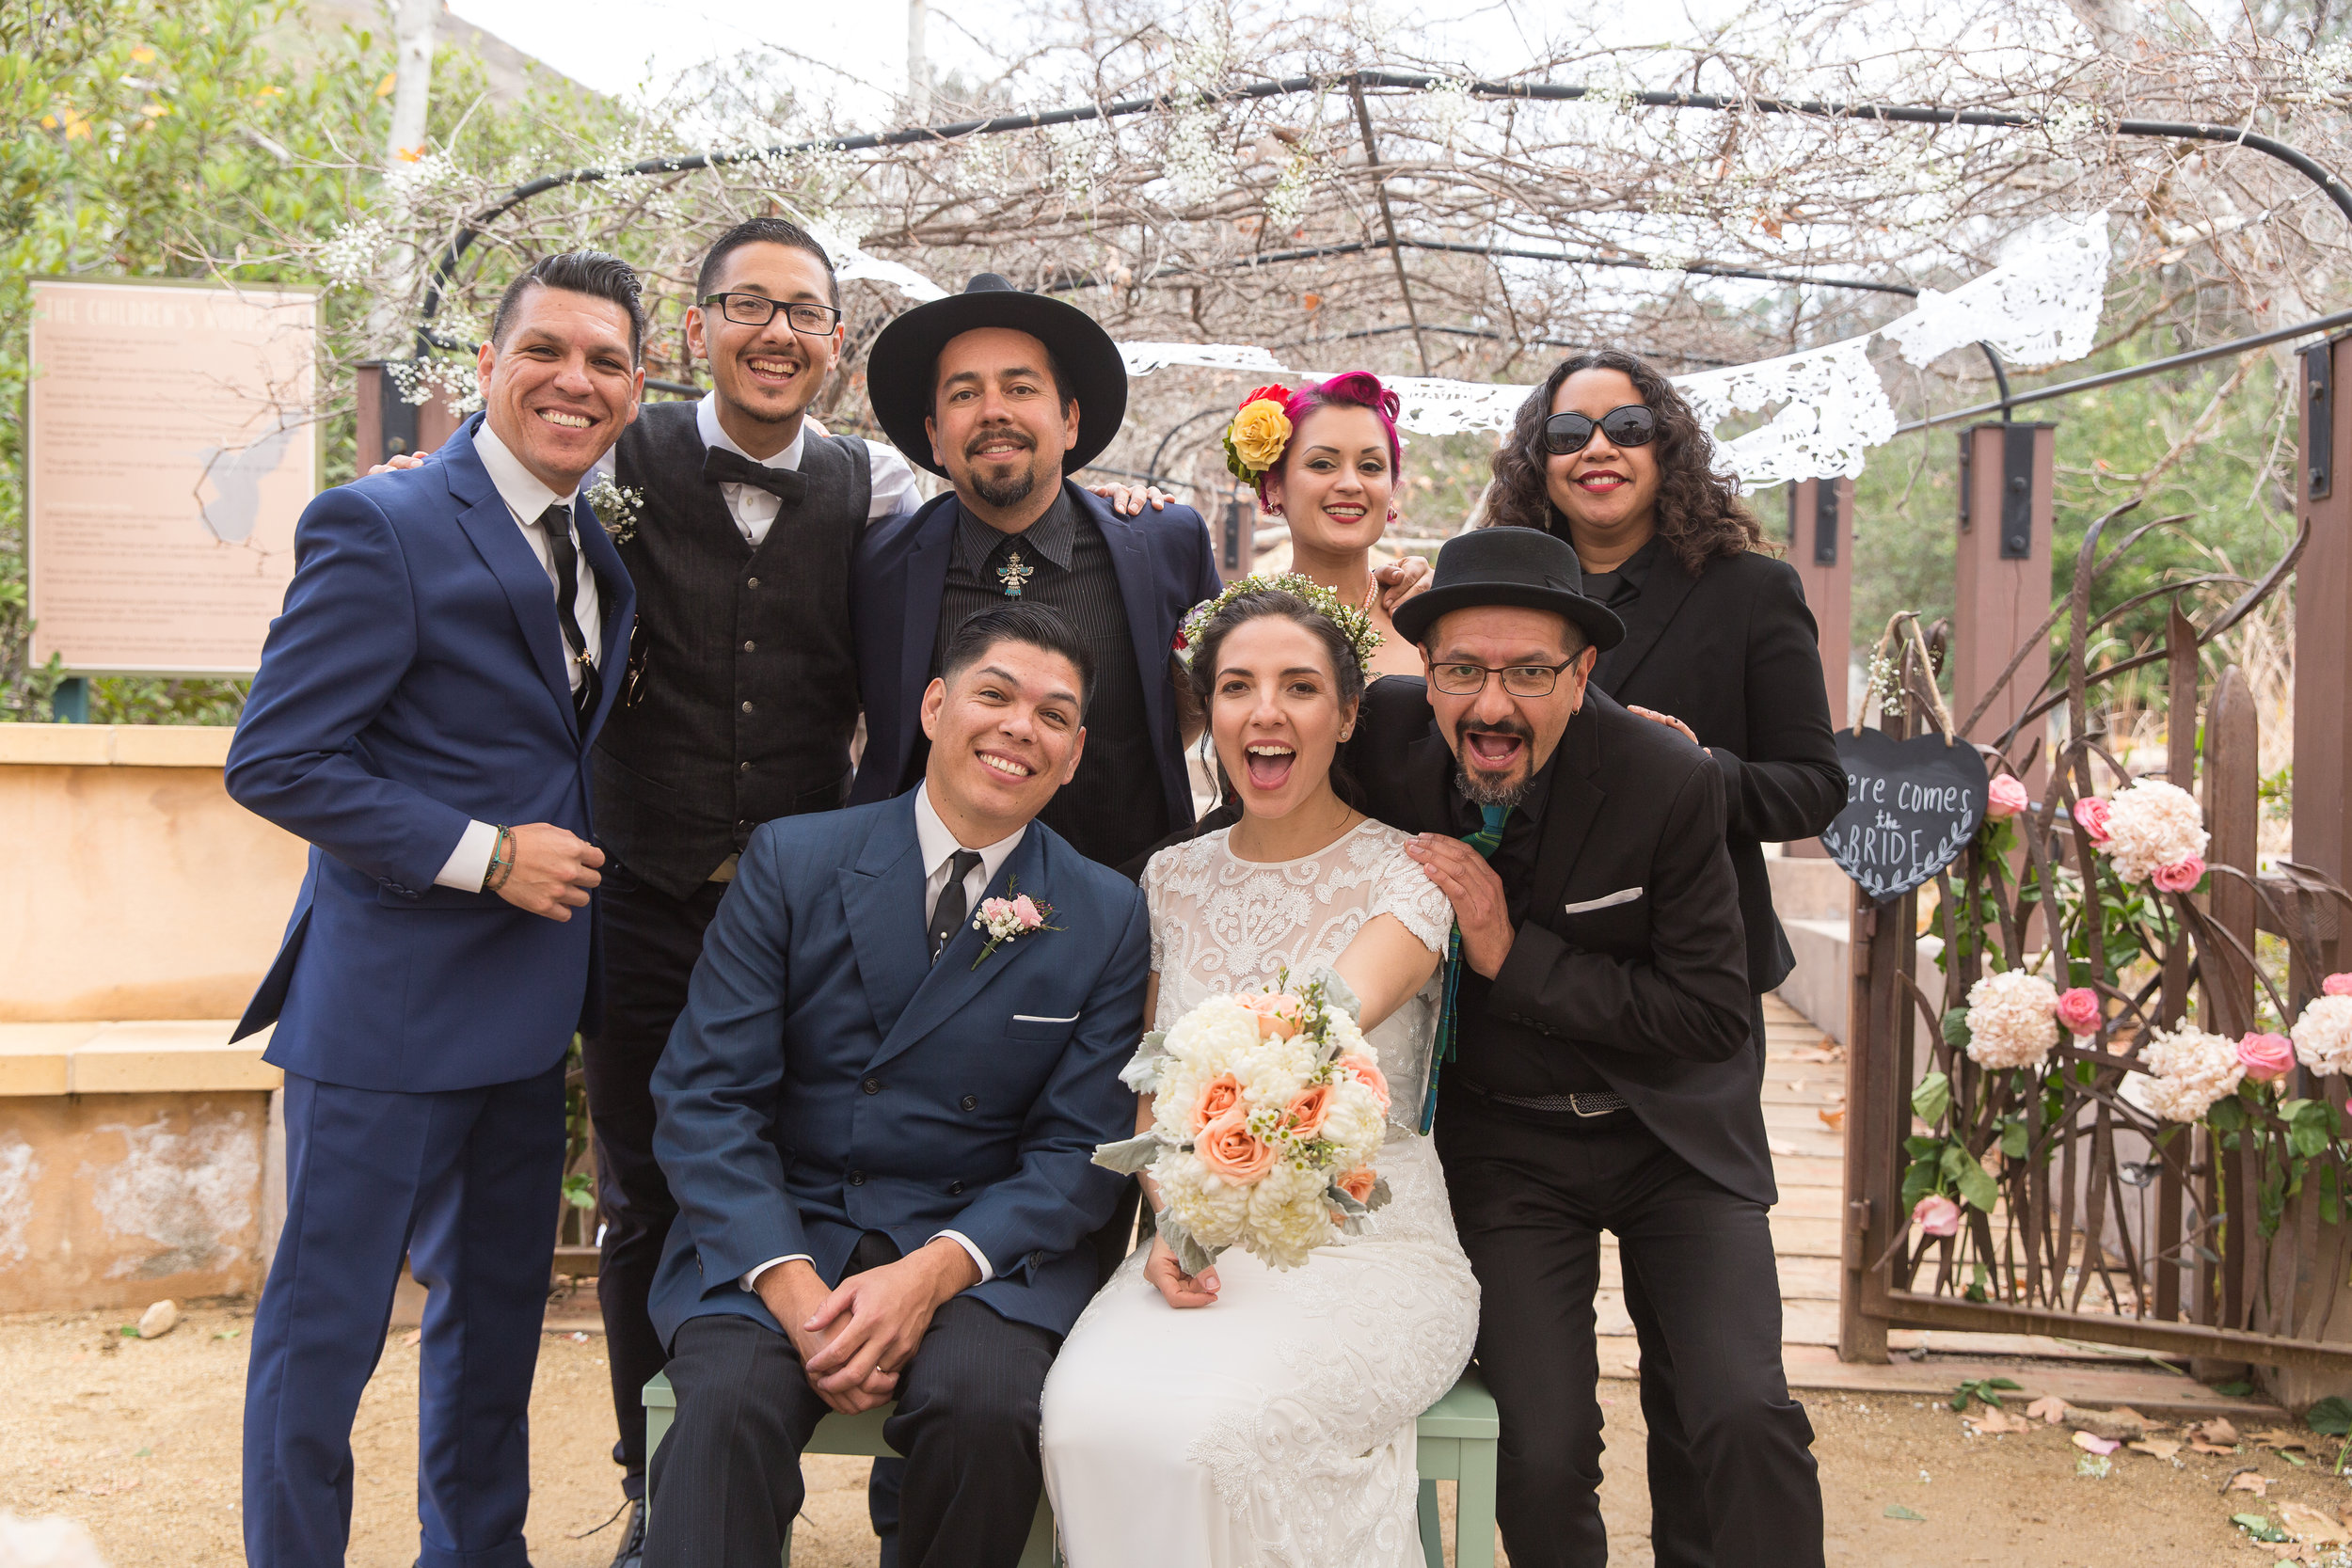 The happy couple happen to be one quarter of  Las Cafeteras .